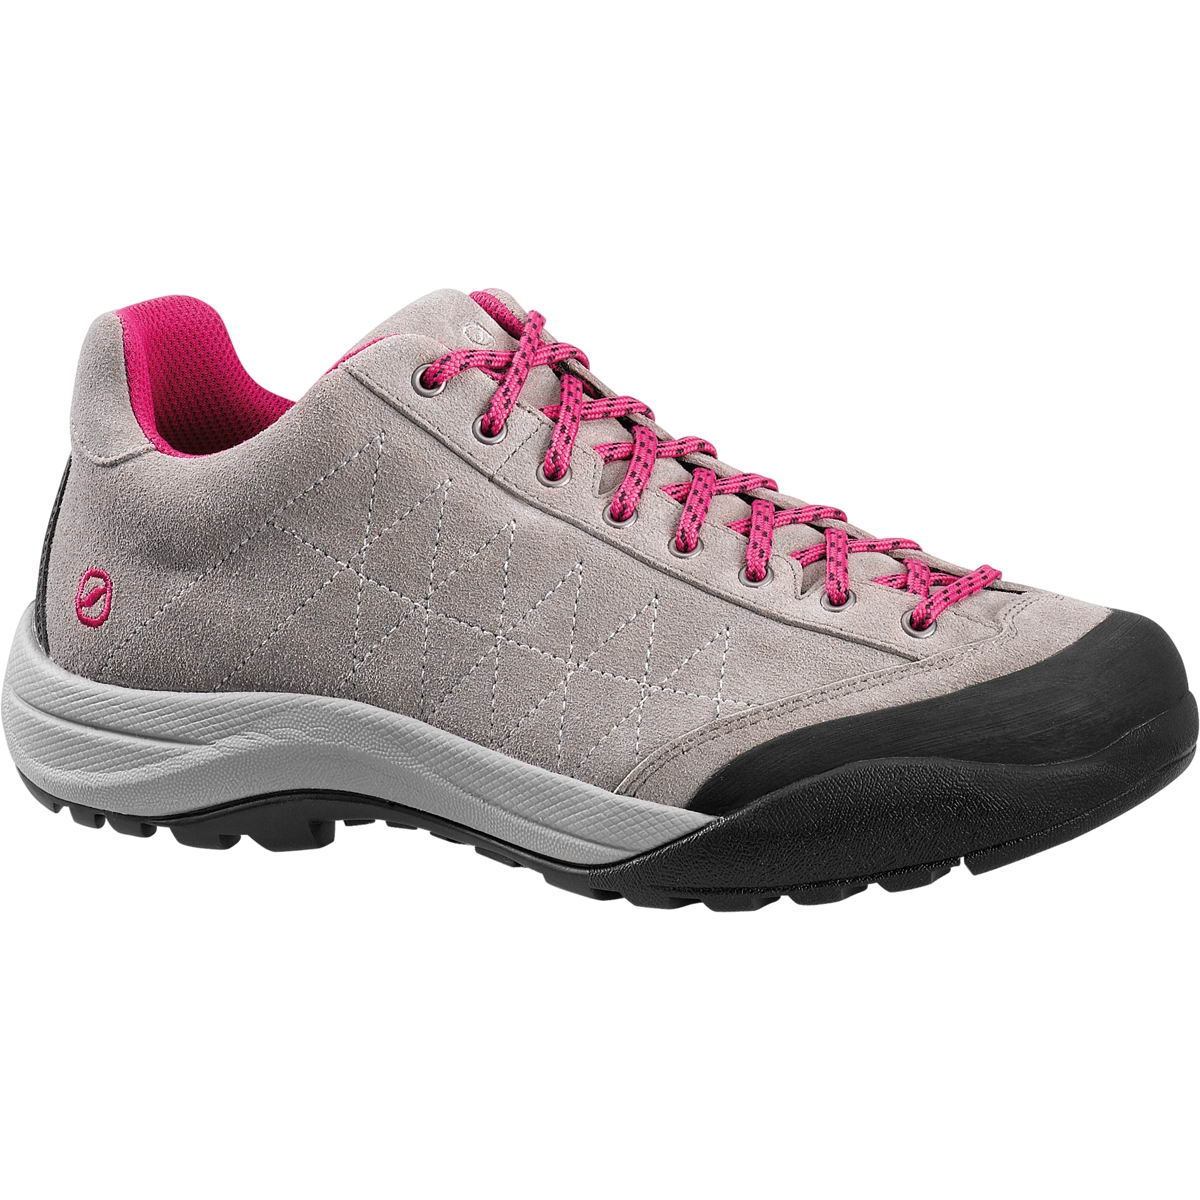 Scarpa Mystic Lite Wmn Oyster/Lipgloss-30